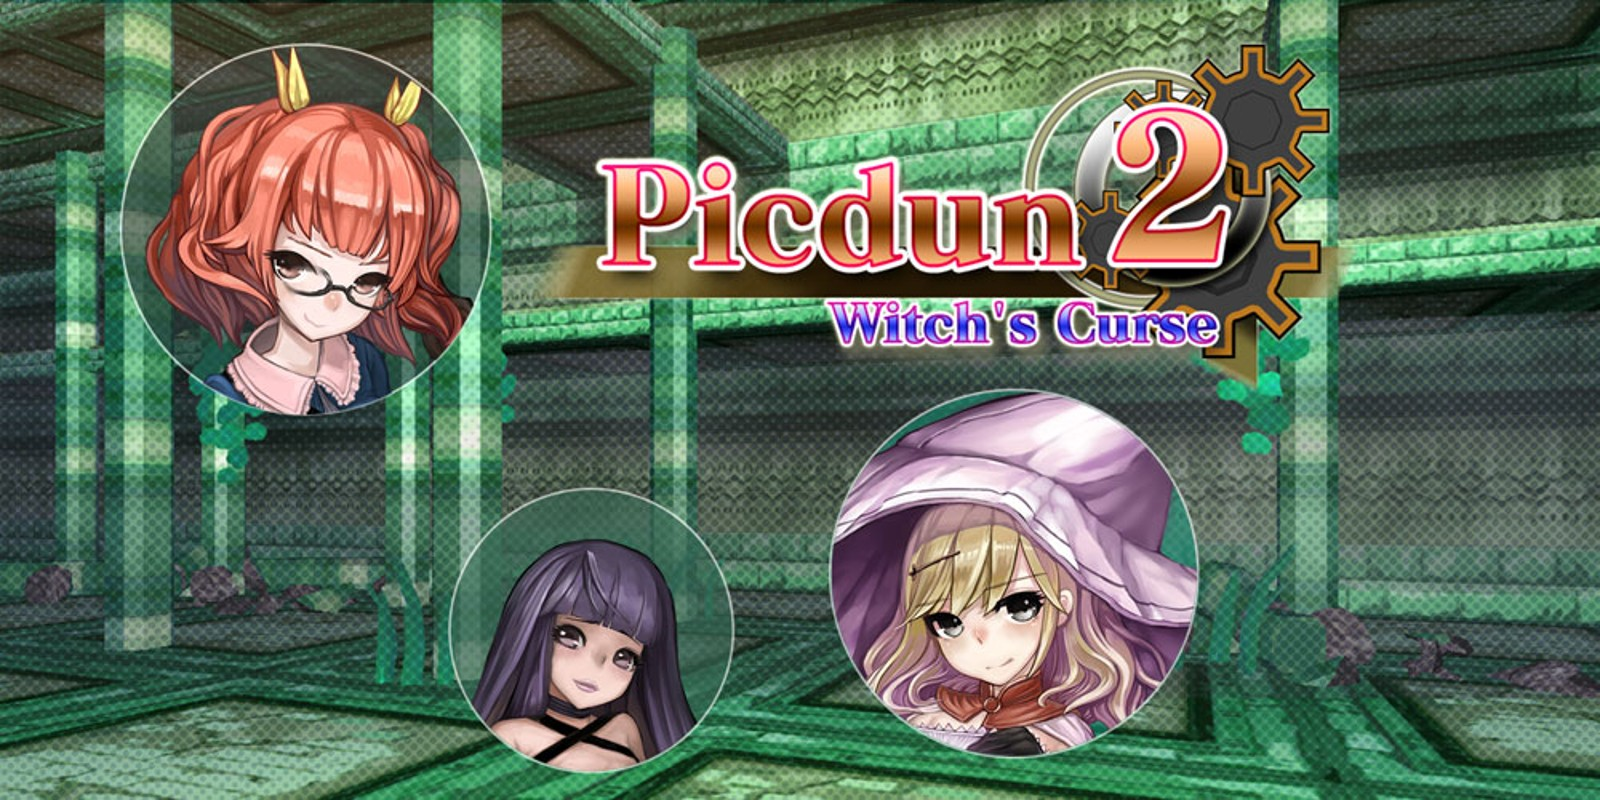 Picdun 2: Witch's Curse